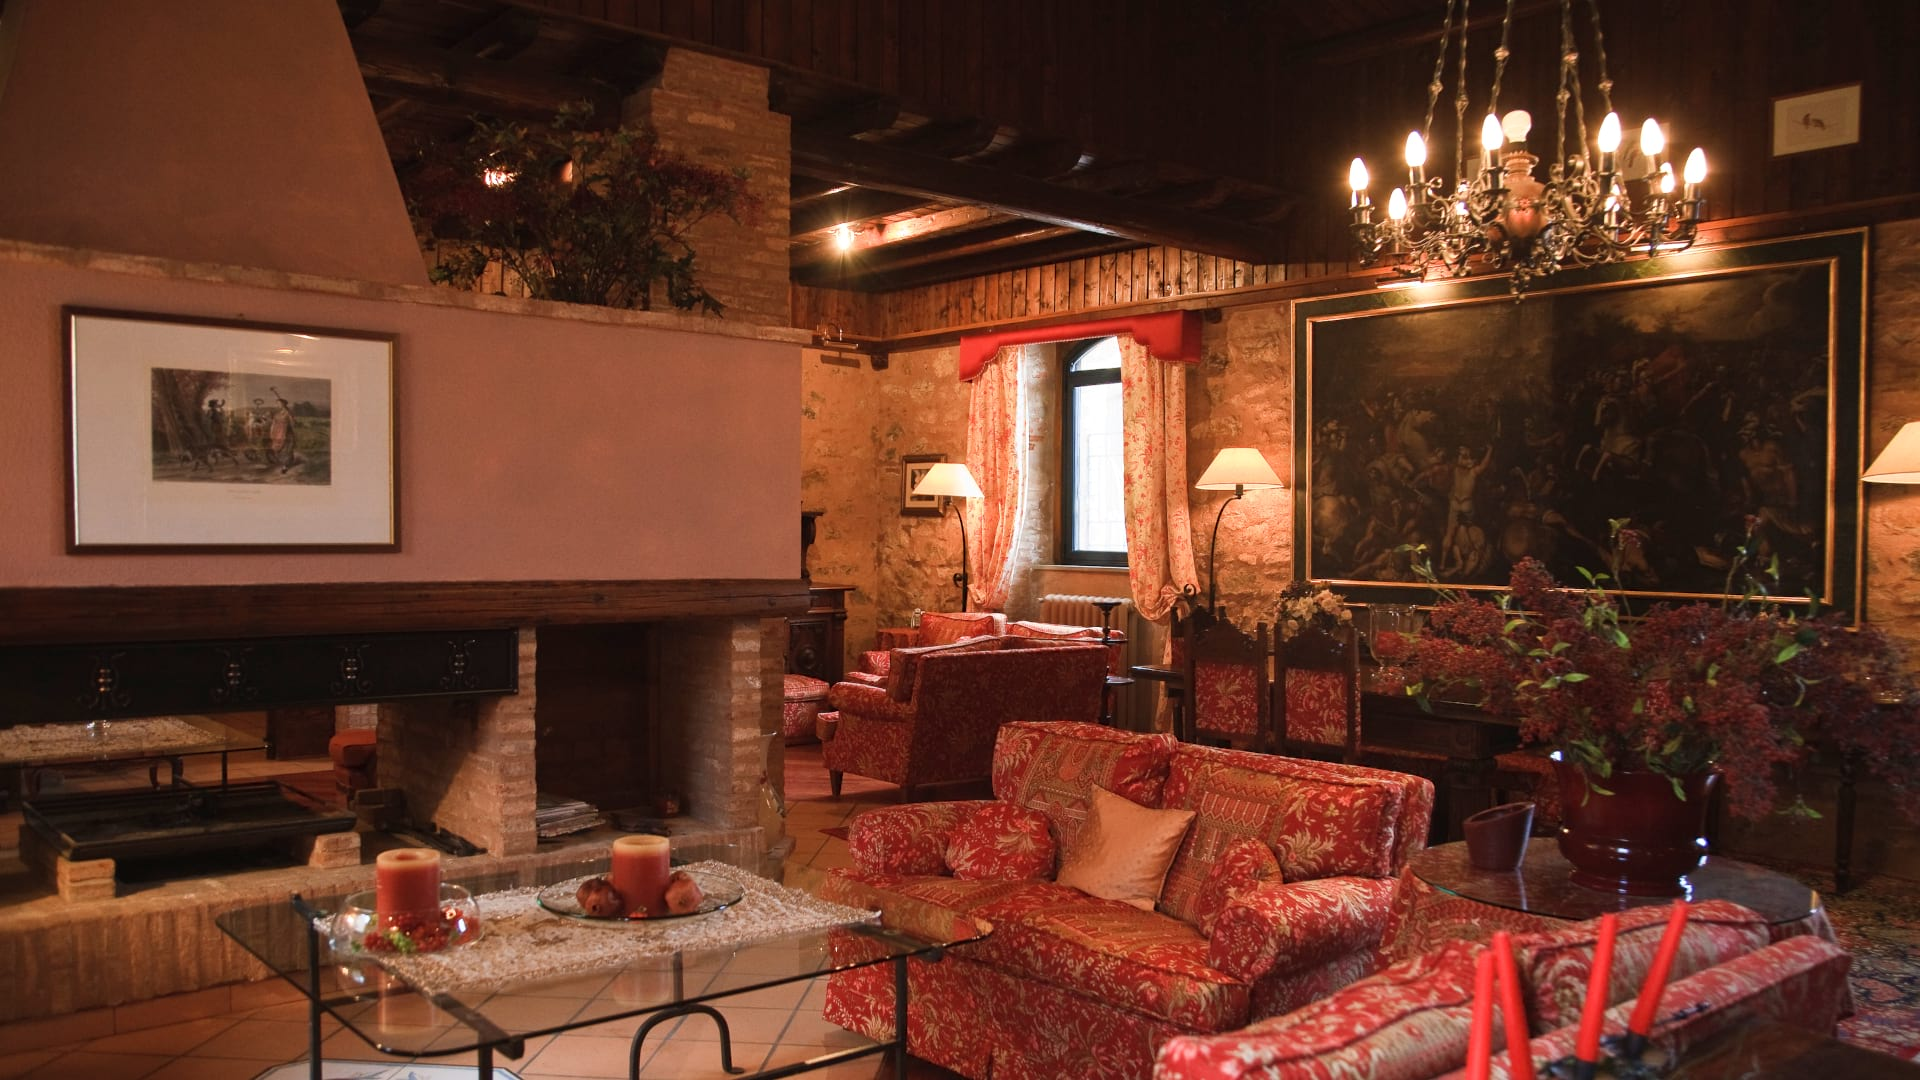 Fireplace room or Ruggero room